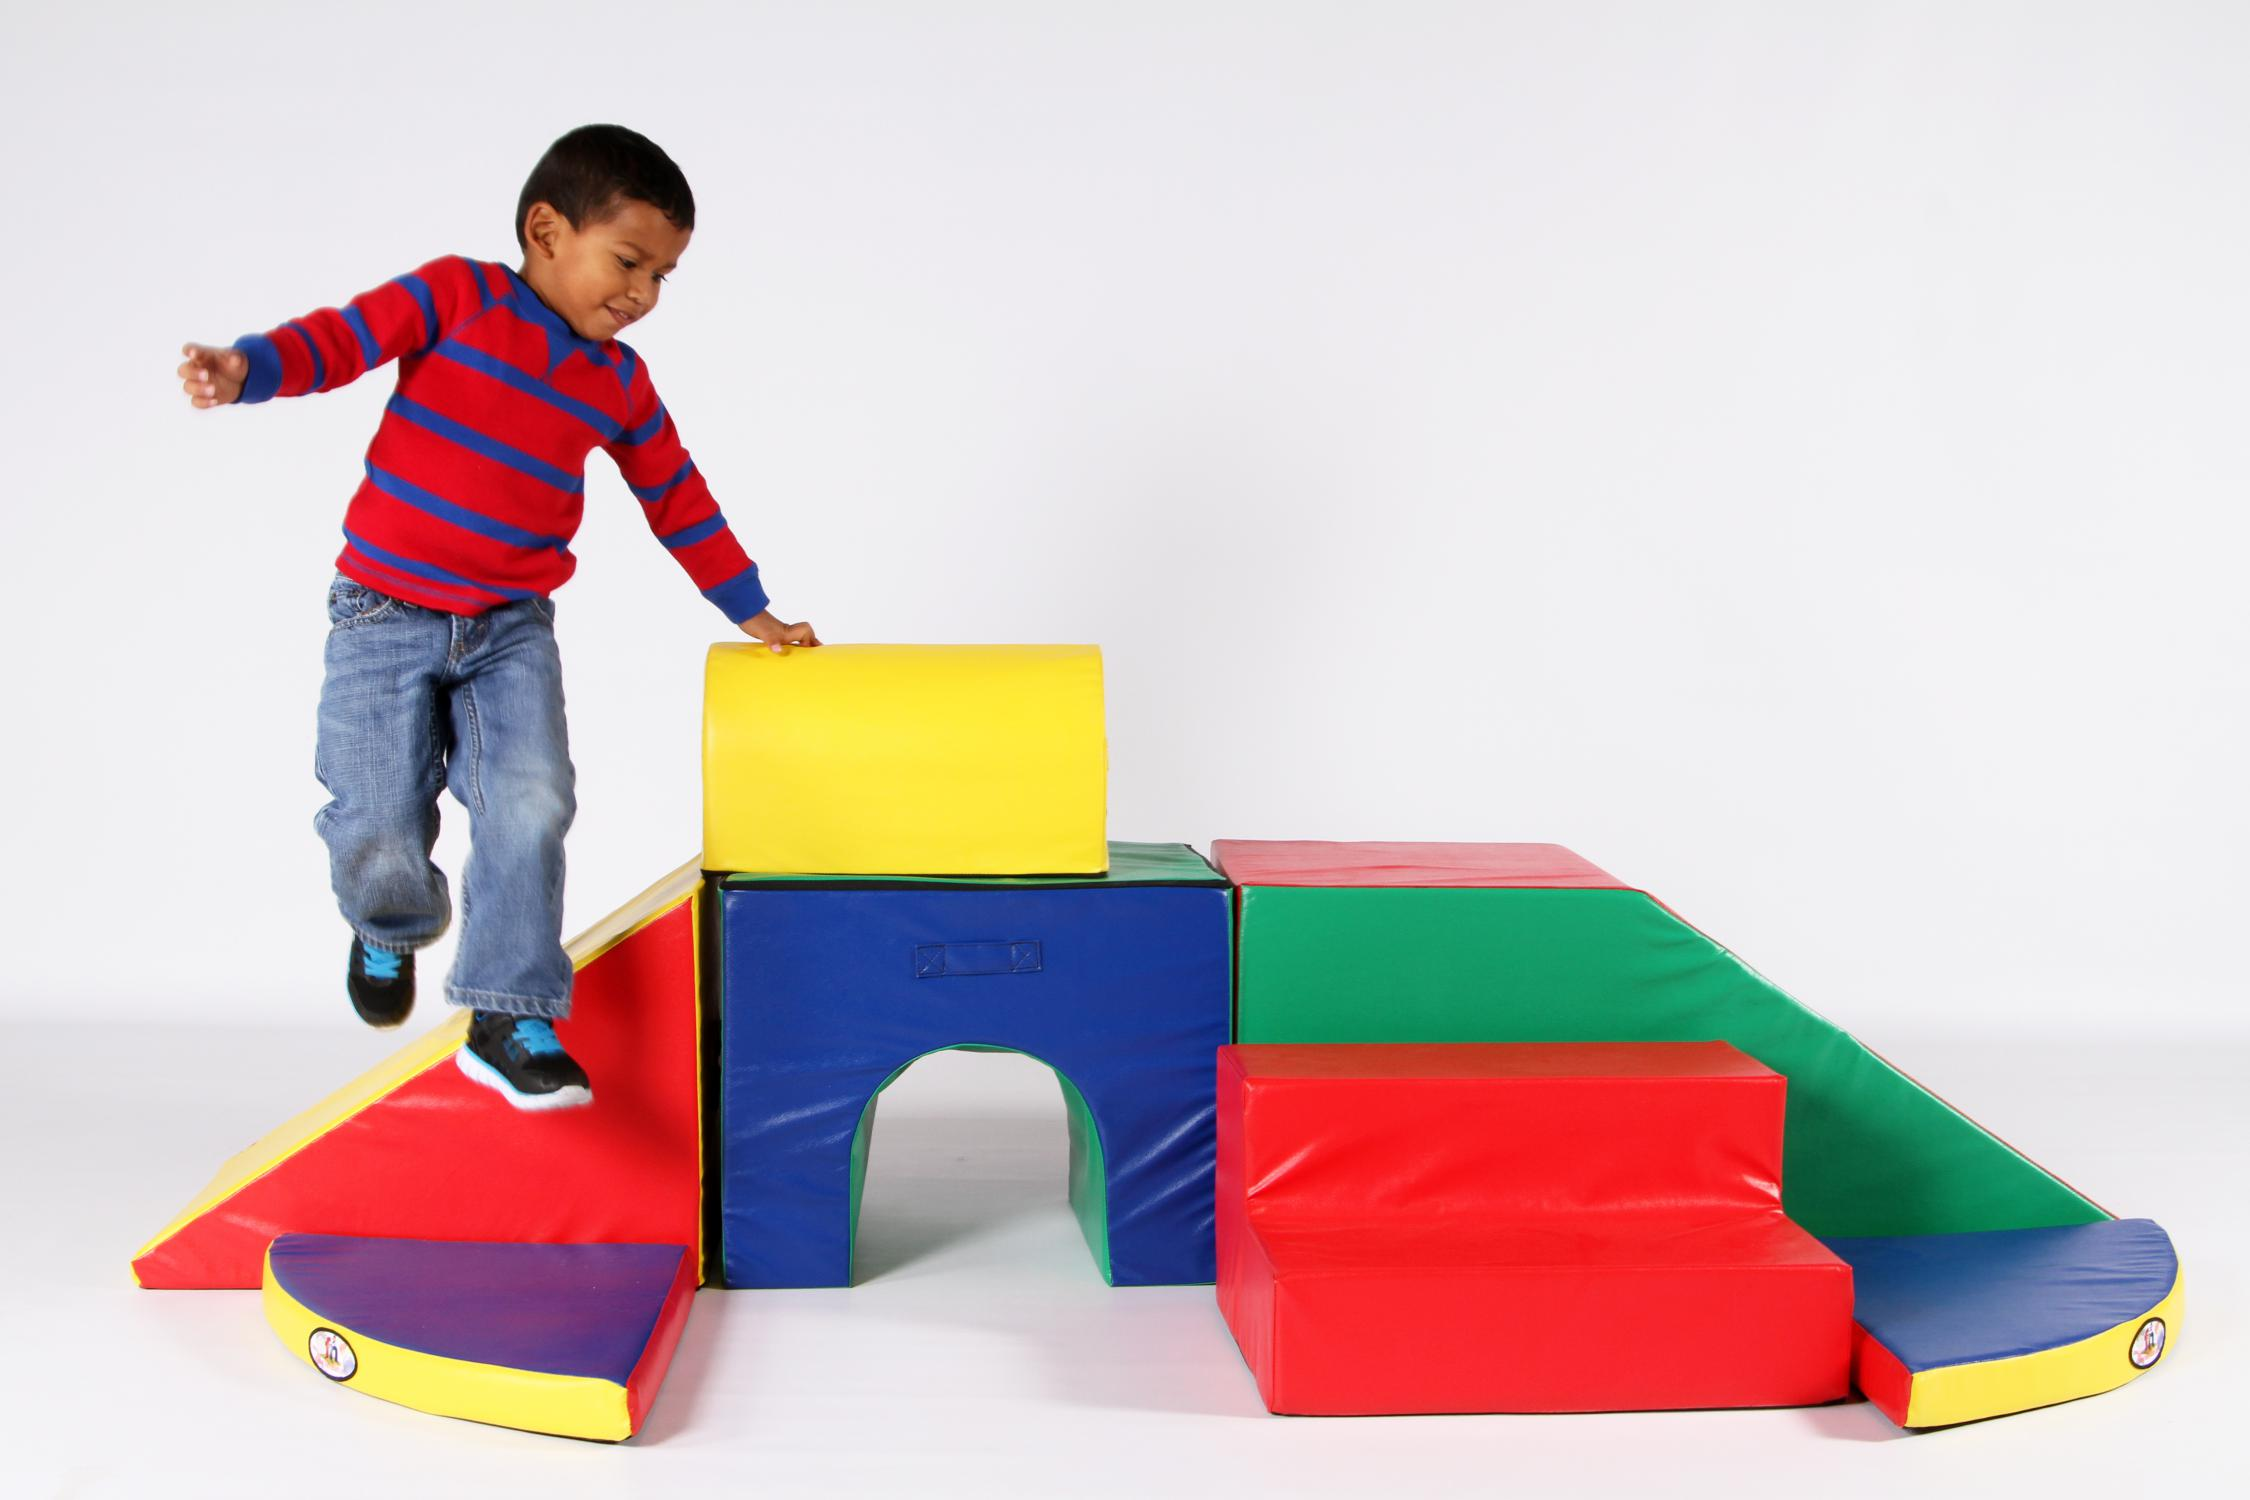 Preschool boy playing on Foamnasium foam play set.